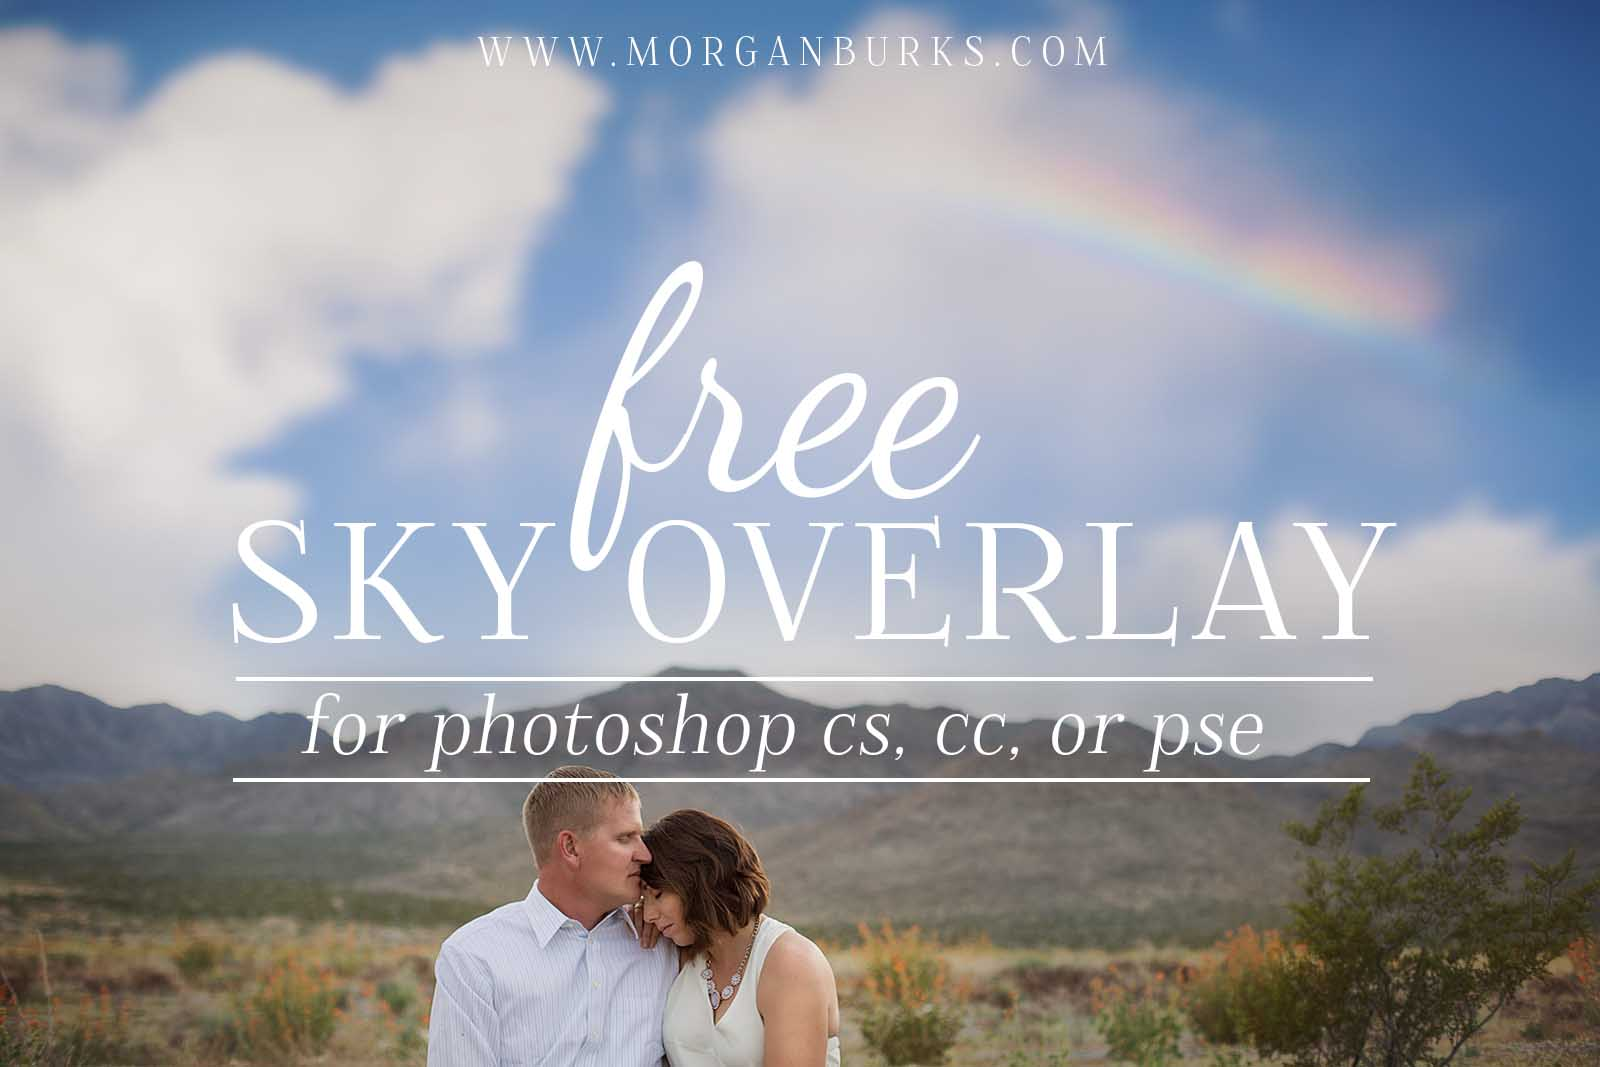 Transform plain skies with a unique rainbow effect with this Free Sky Overlay for Photoshop & Elements!